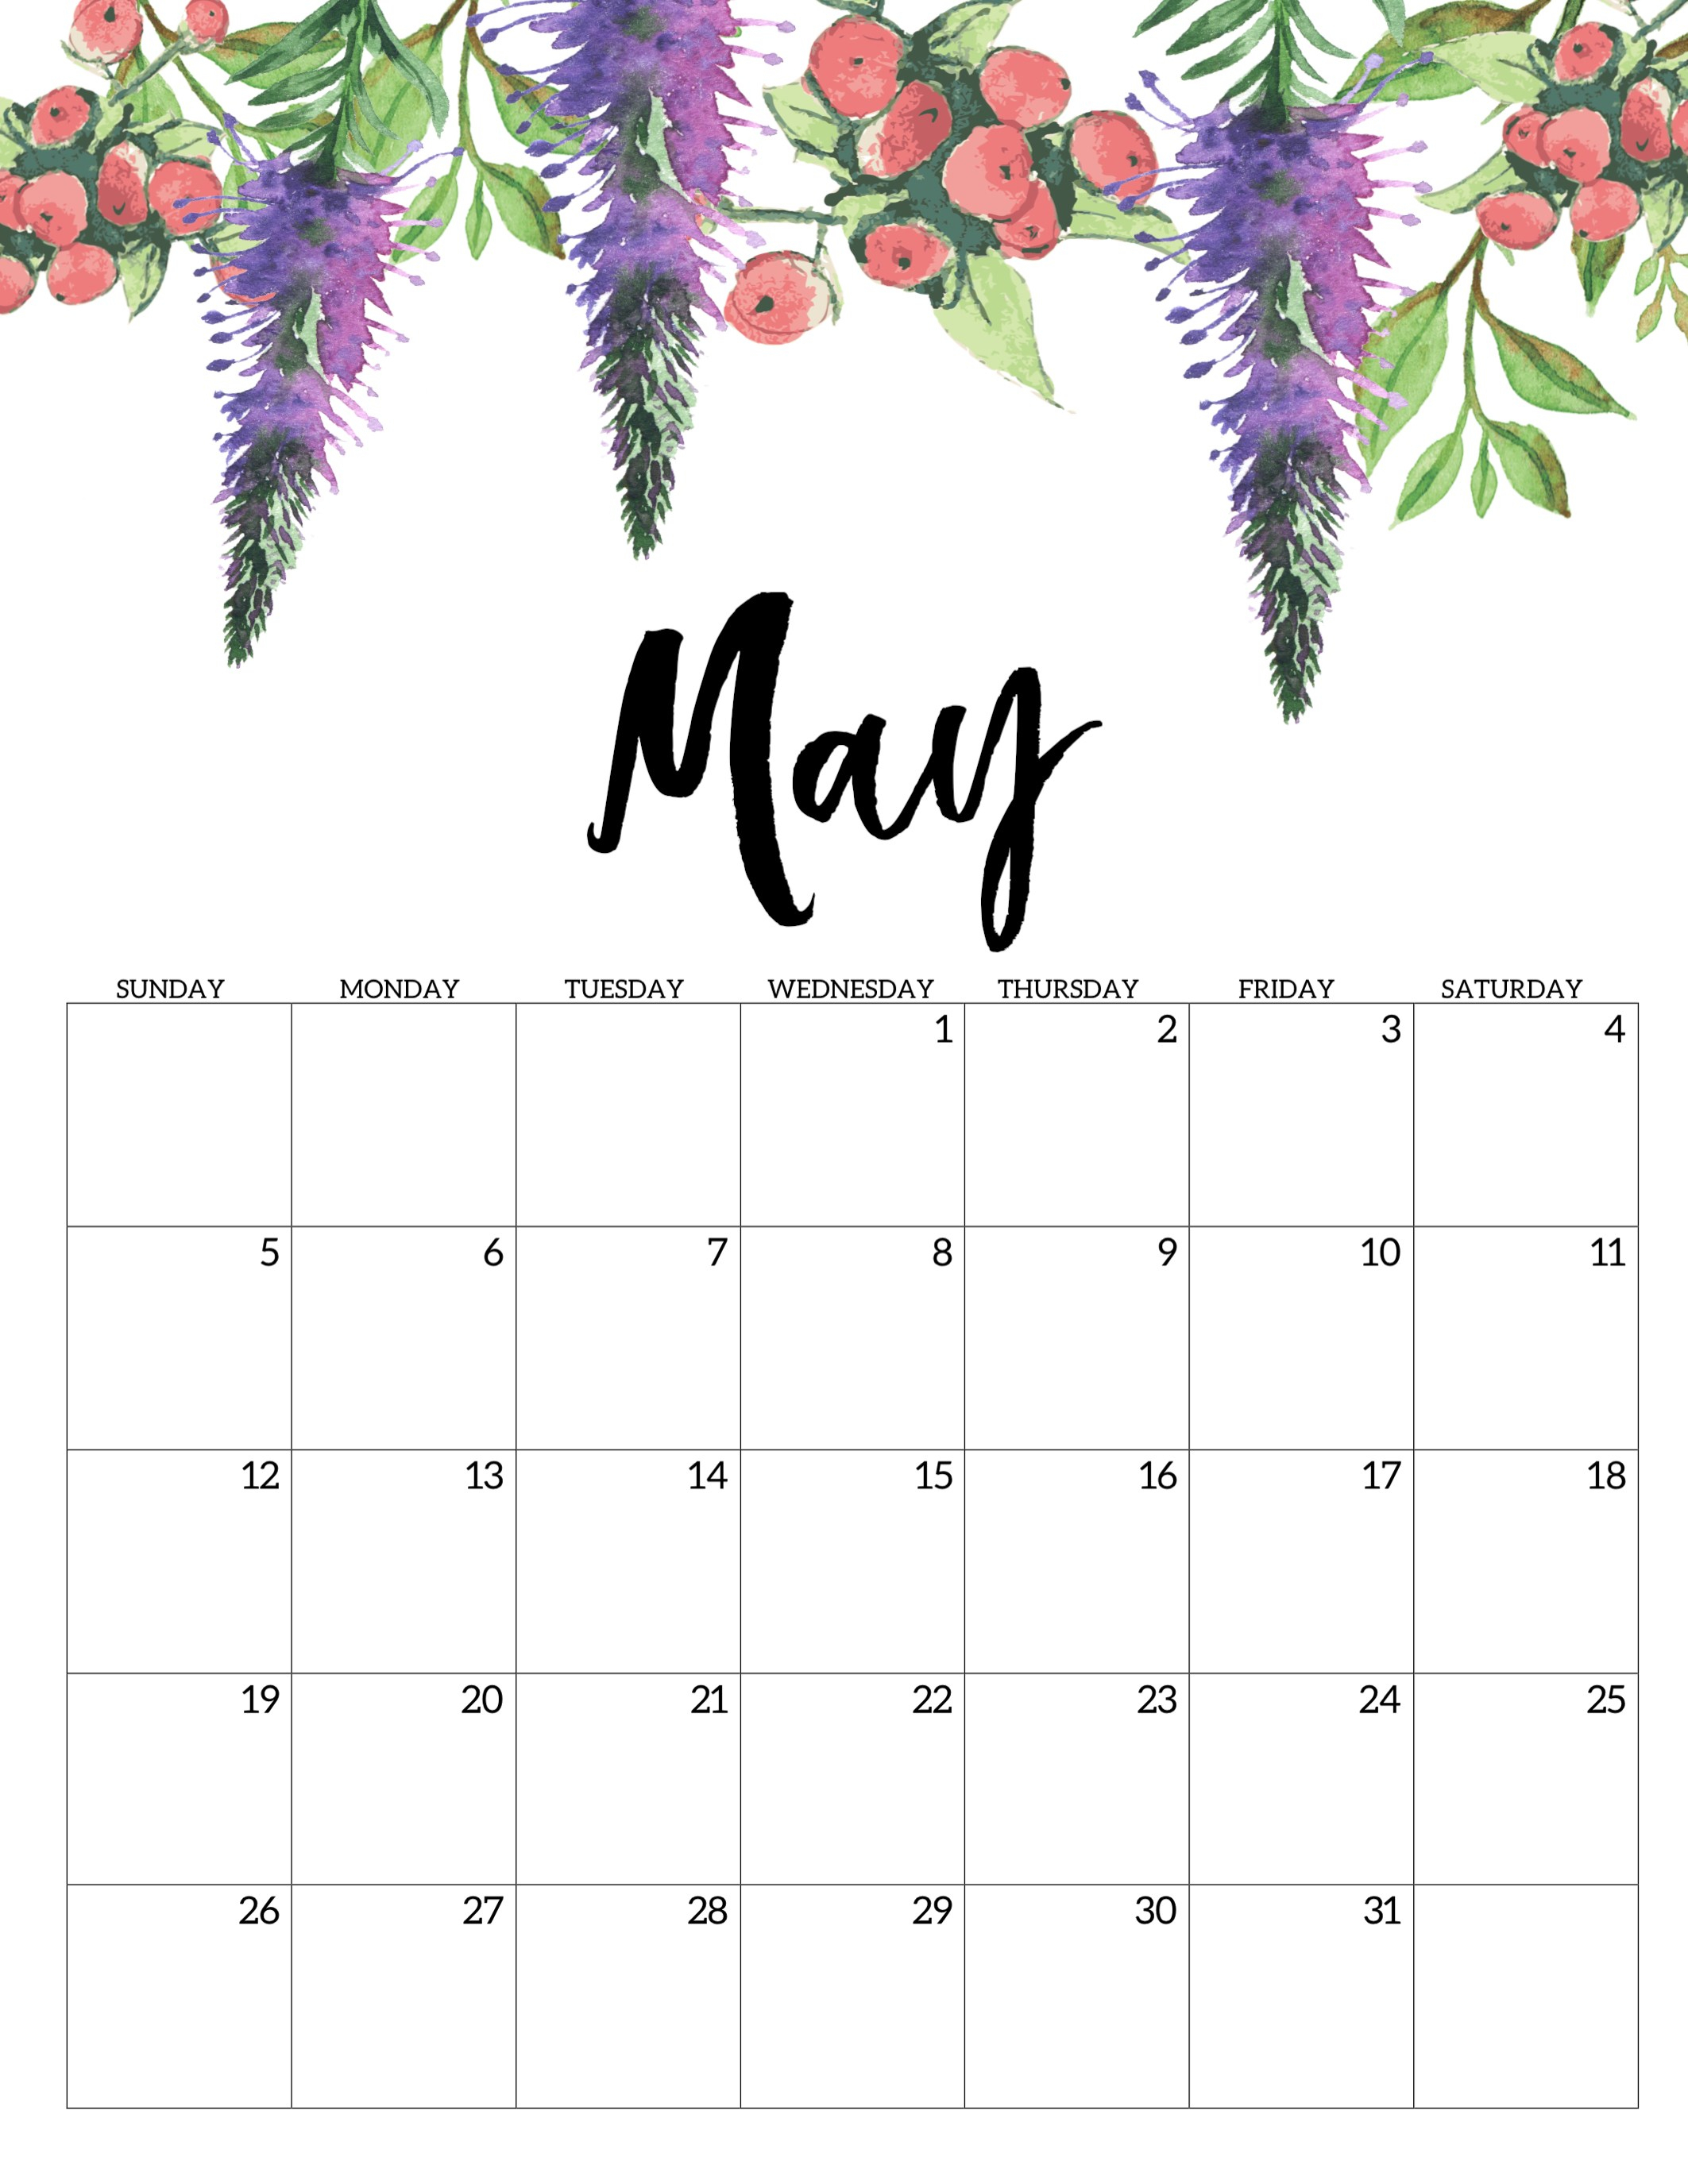 Free Printable Calendar 2019 - Floral - Paper Trail Design intended for July Calendar Template Flowers